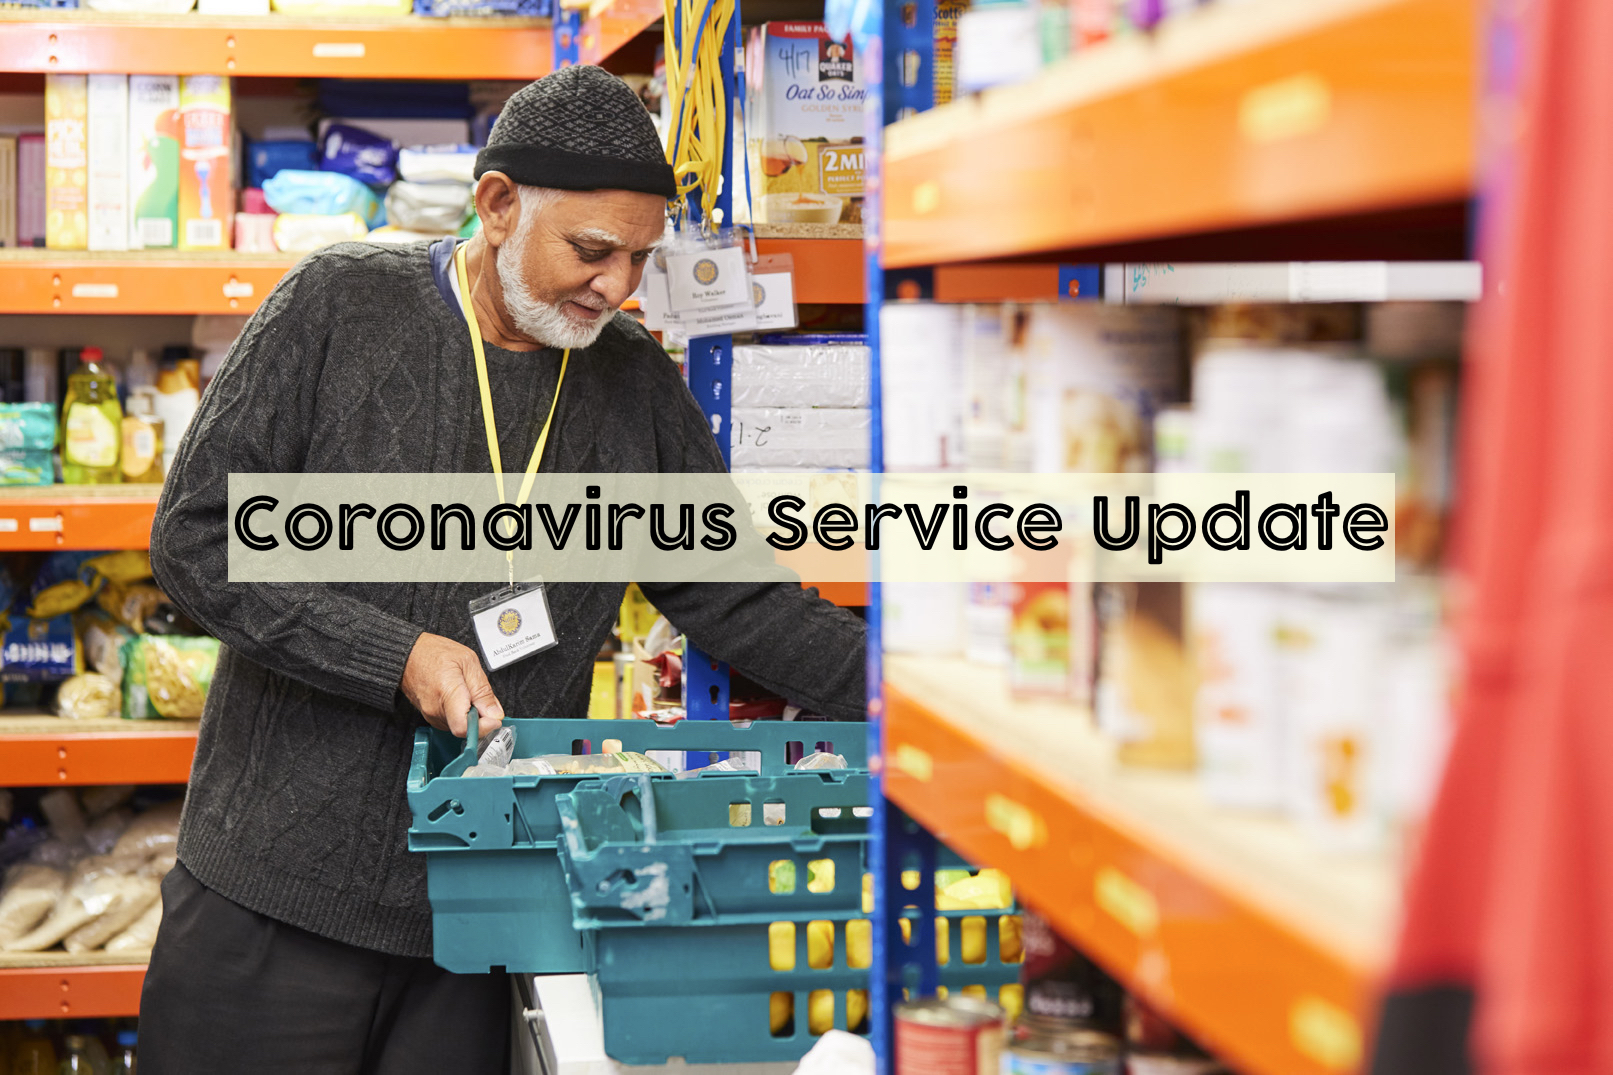 Sufra Coronavirus Emergency Appeal Service Update Home Page Middle